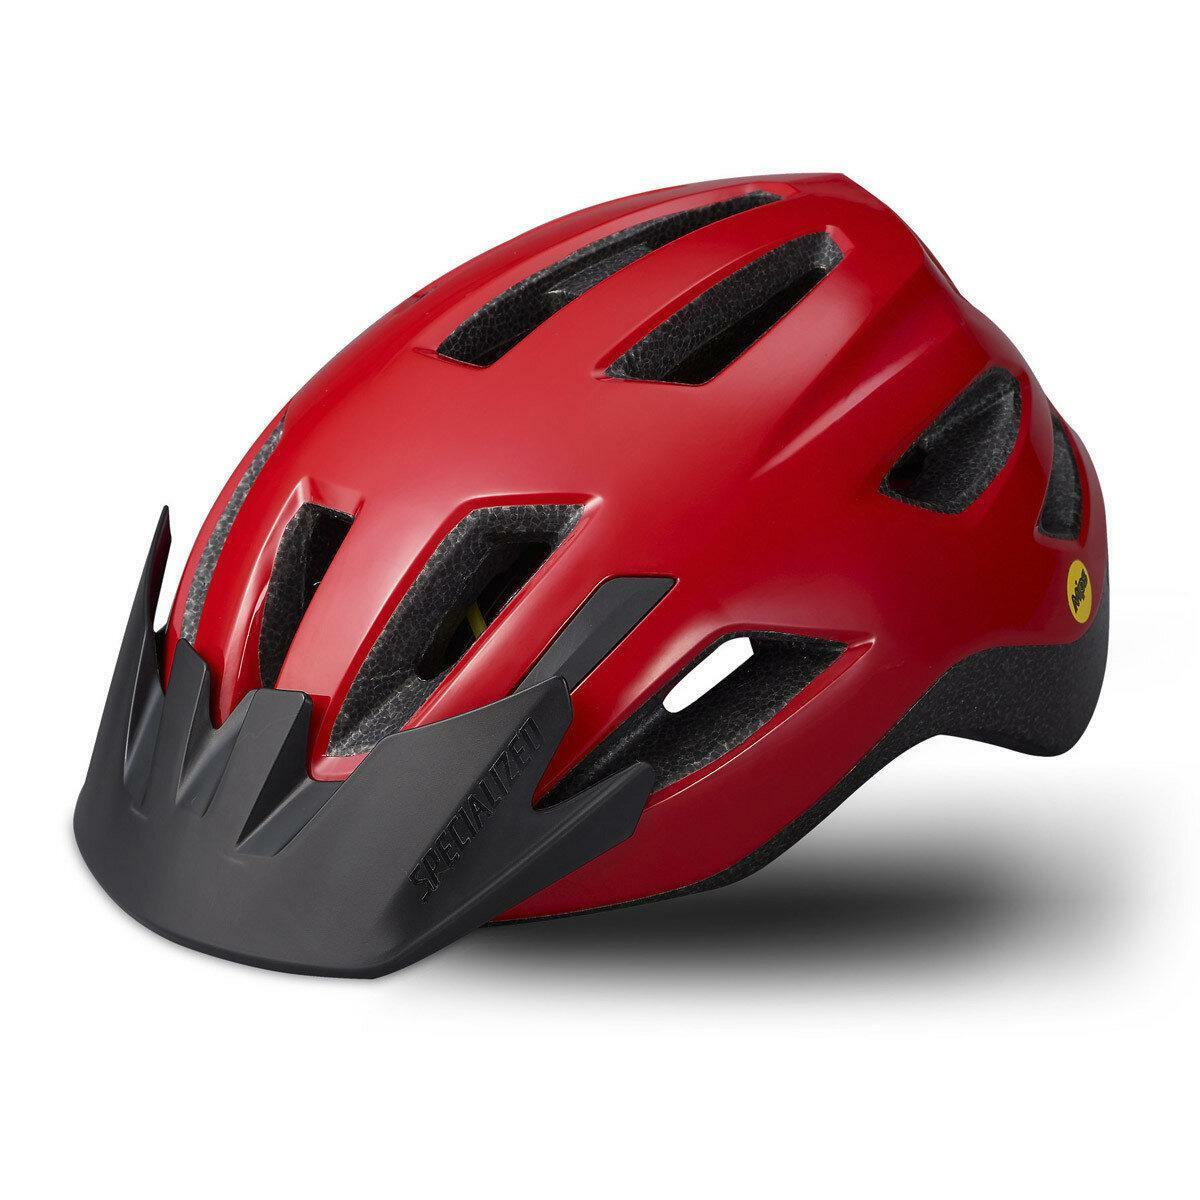 specialized specialized casco bici bambino shuffle led mips